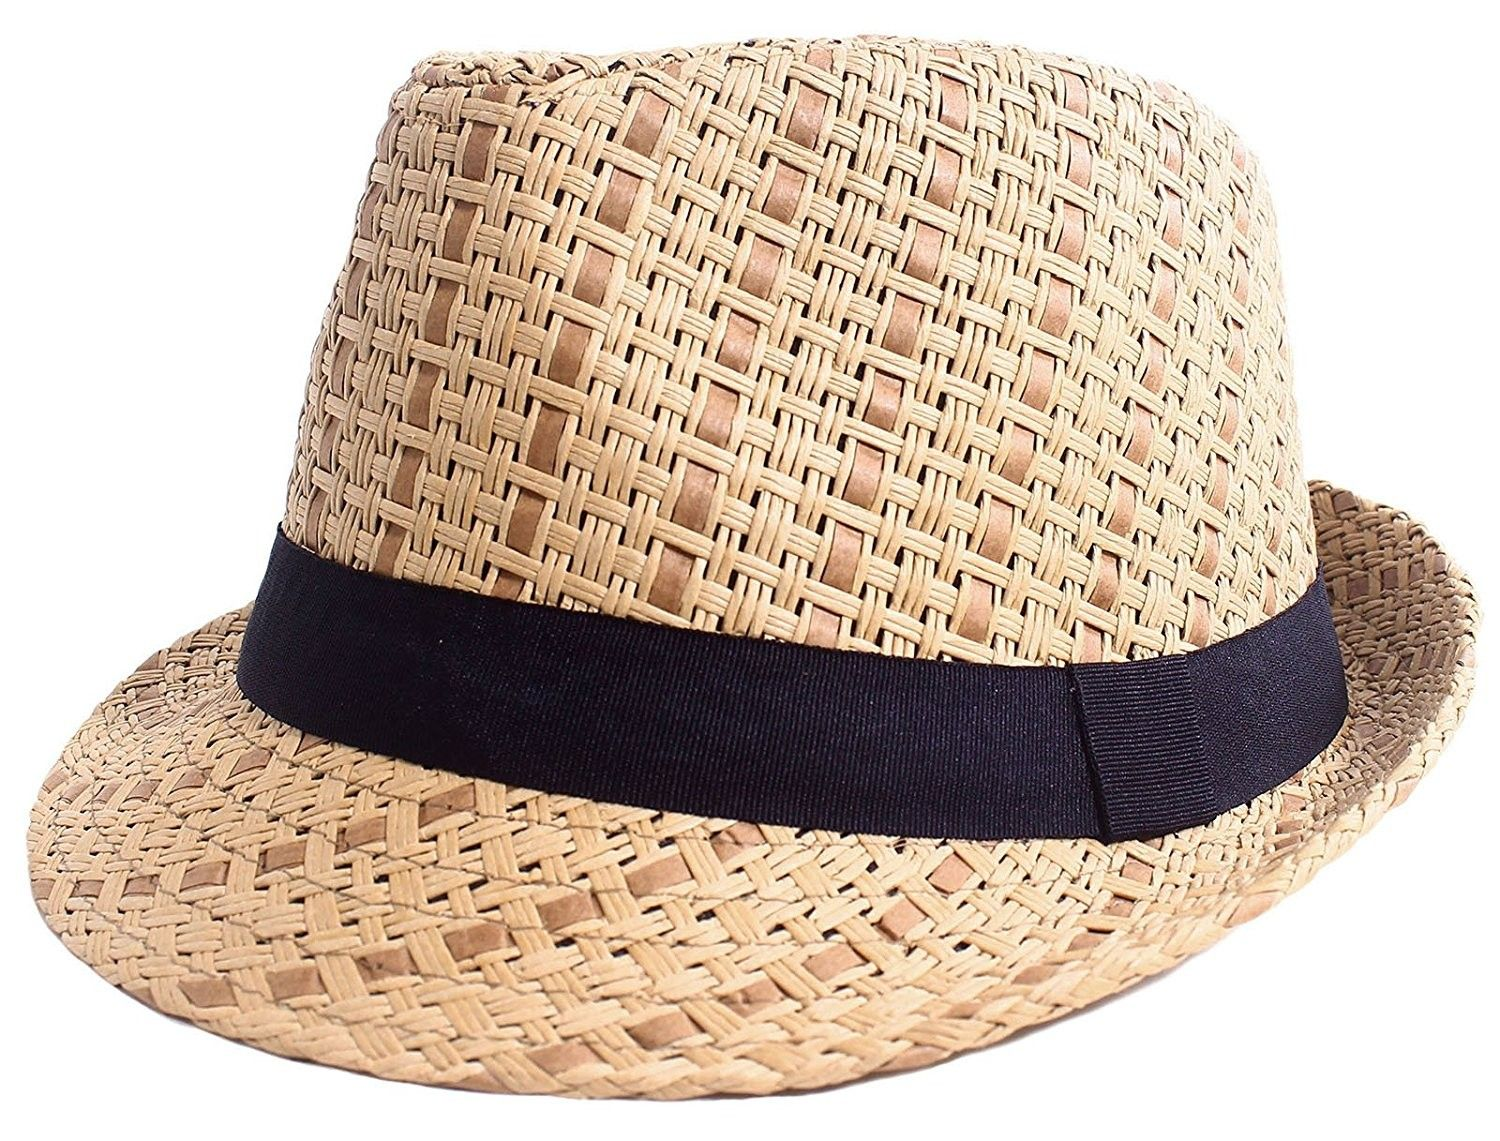 72748103403c9 Straw Fedora Hat Men   Women s Summer Short Brim Beach Cap with Band -  Brown Hat With Black Band - CV184RN59YD - Hats   Caps